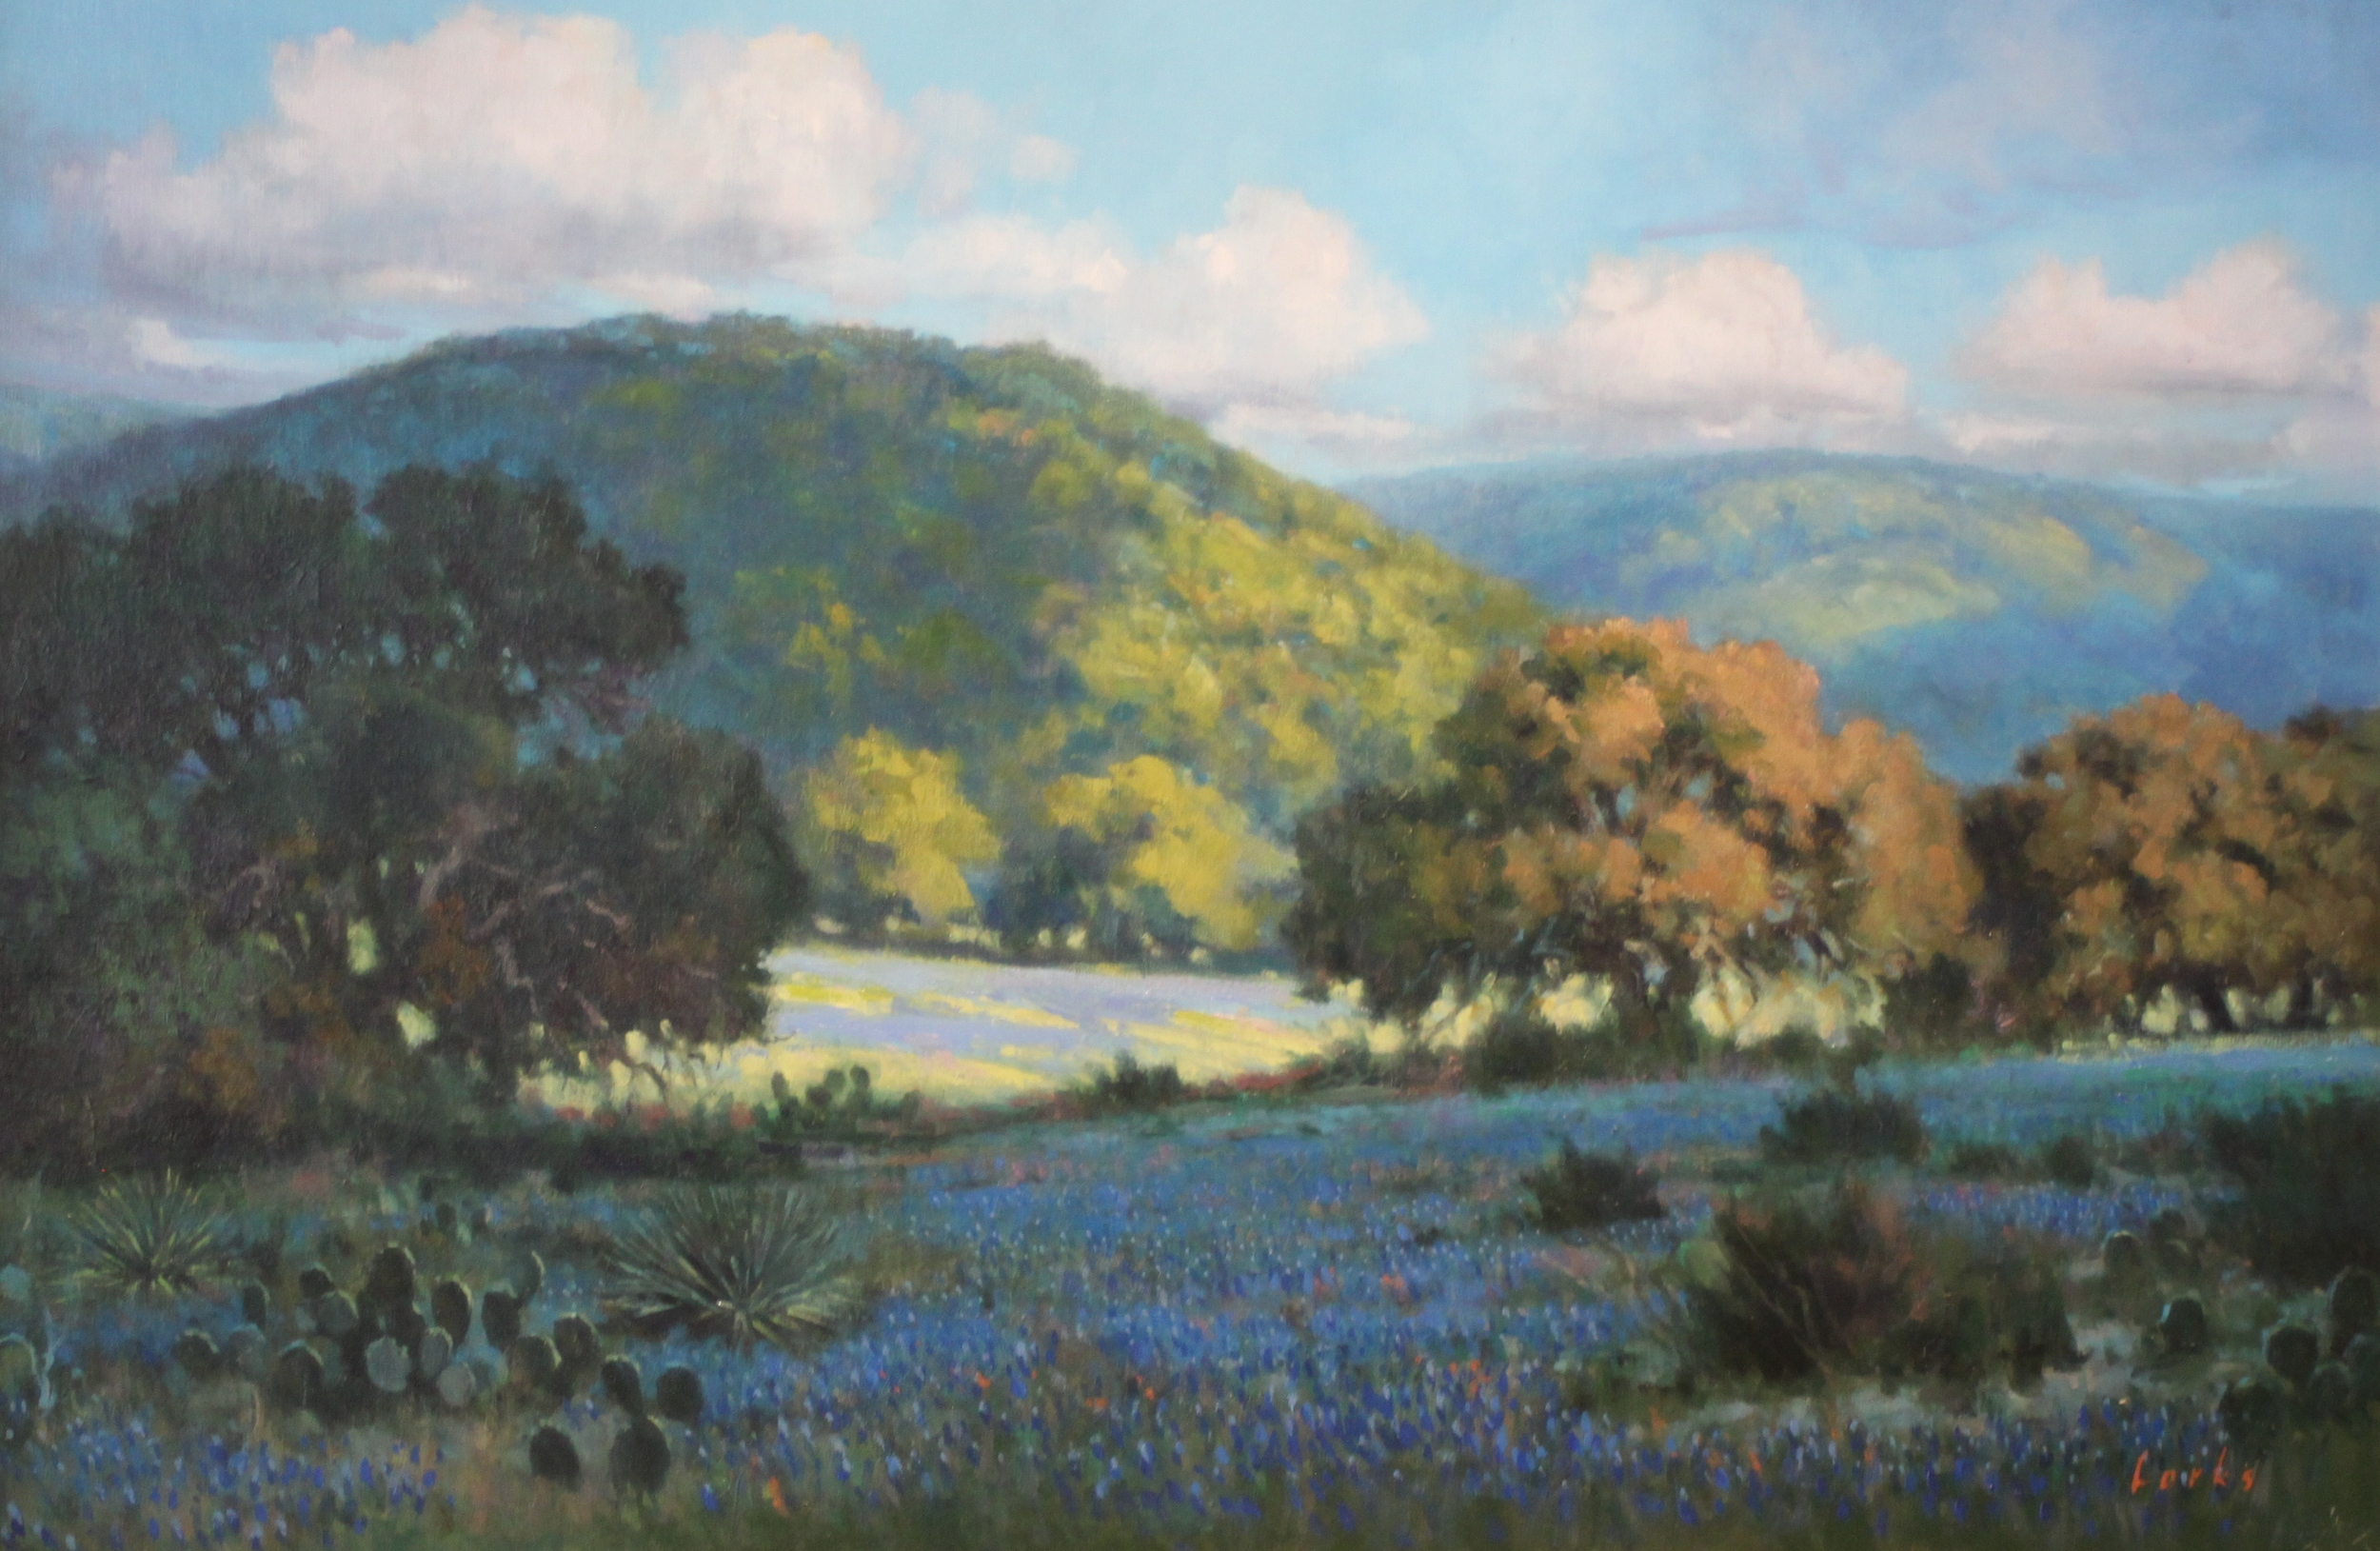 David Forks  Oaks in the Valley  24X36  Oil on Canvas  SOLD